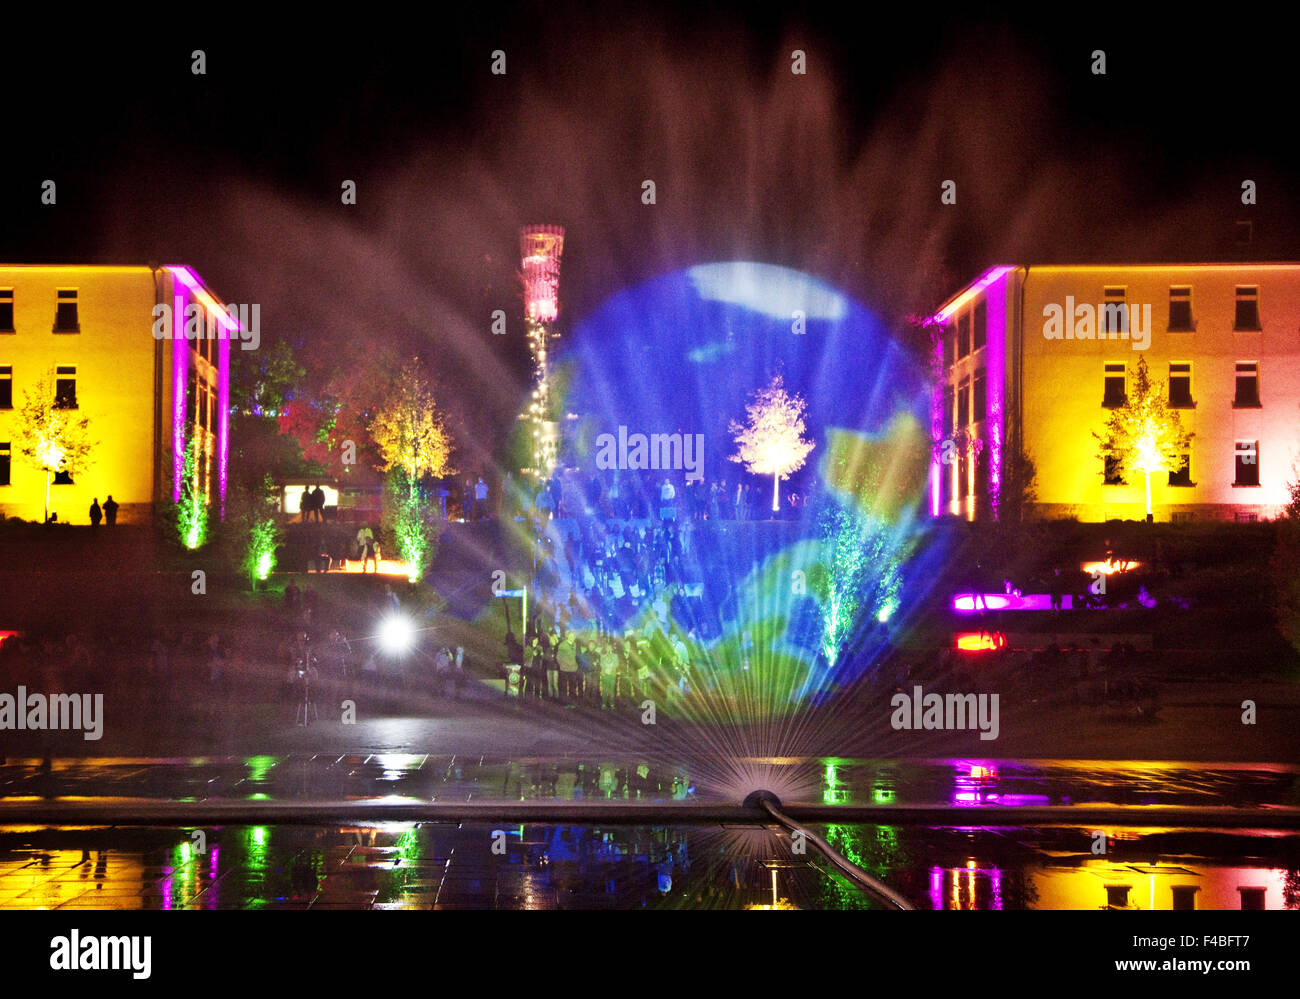 Garden Night Germany Stock Photos  Garden Night Germany Stock Images  Alamy